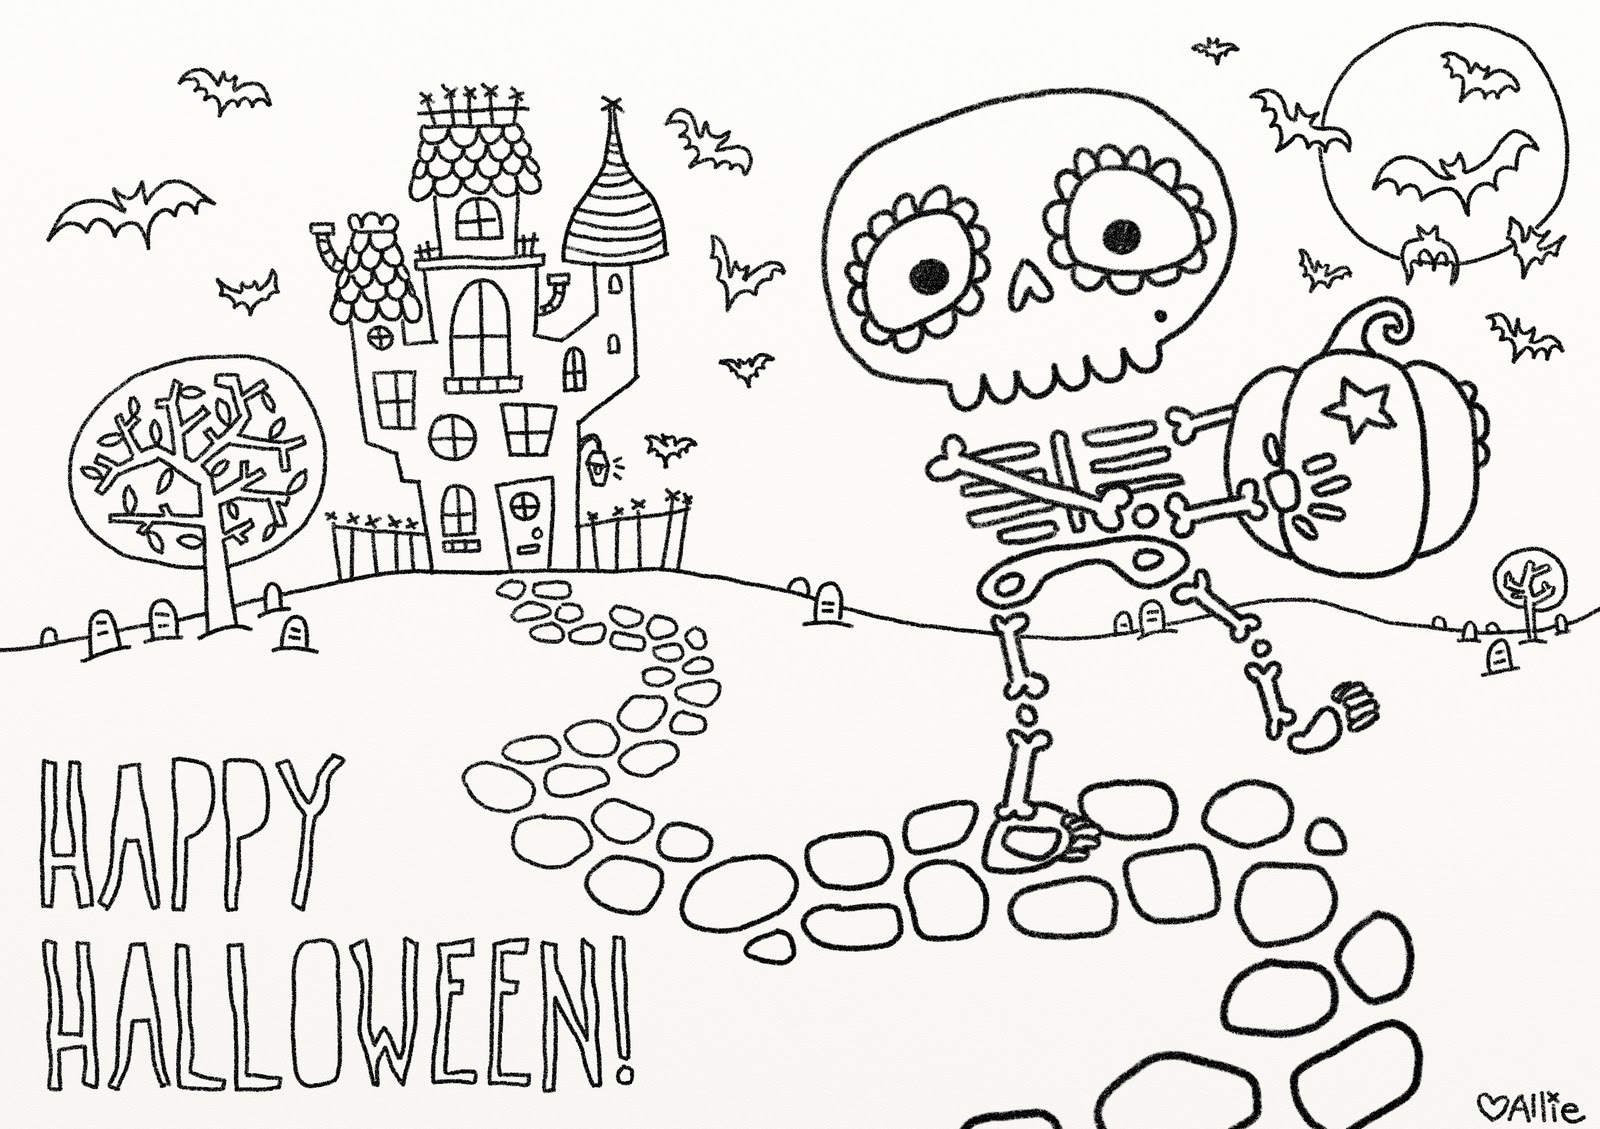 Truly Hunted Night Of Halloween Colouring Pages